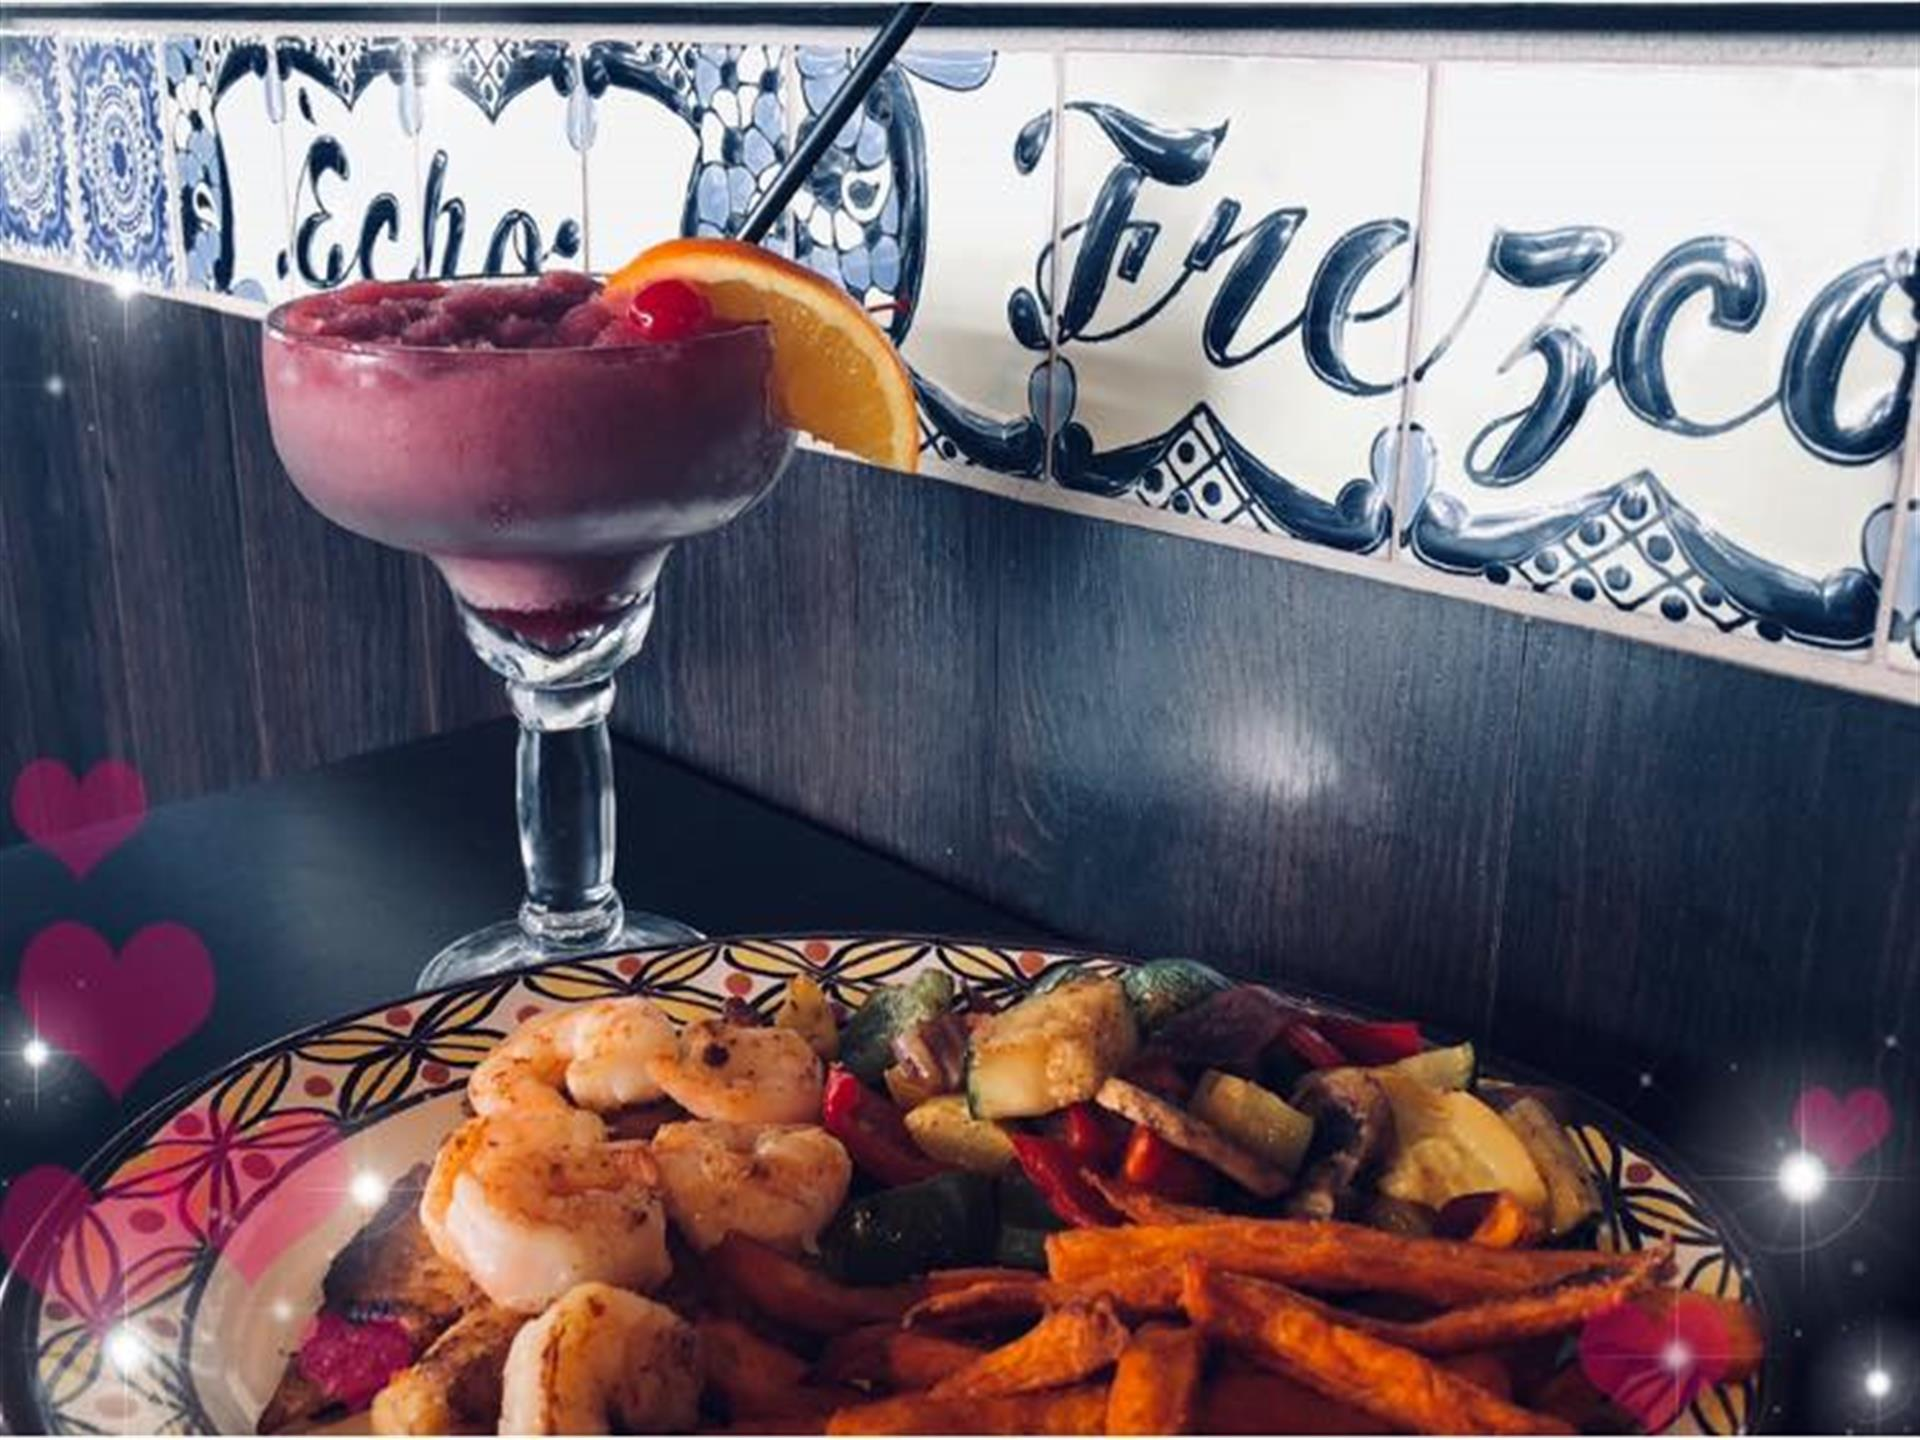 grilled steak topped with grilled shrimp. Sweet potato fries and vegetables on the side. Frozen cocktail with an orange slice and a cherry.